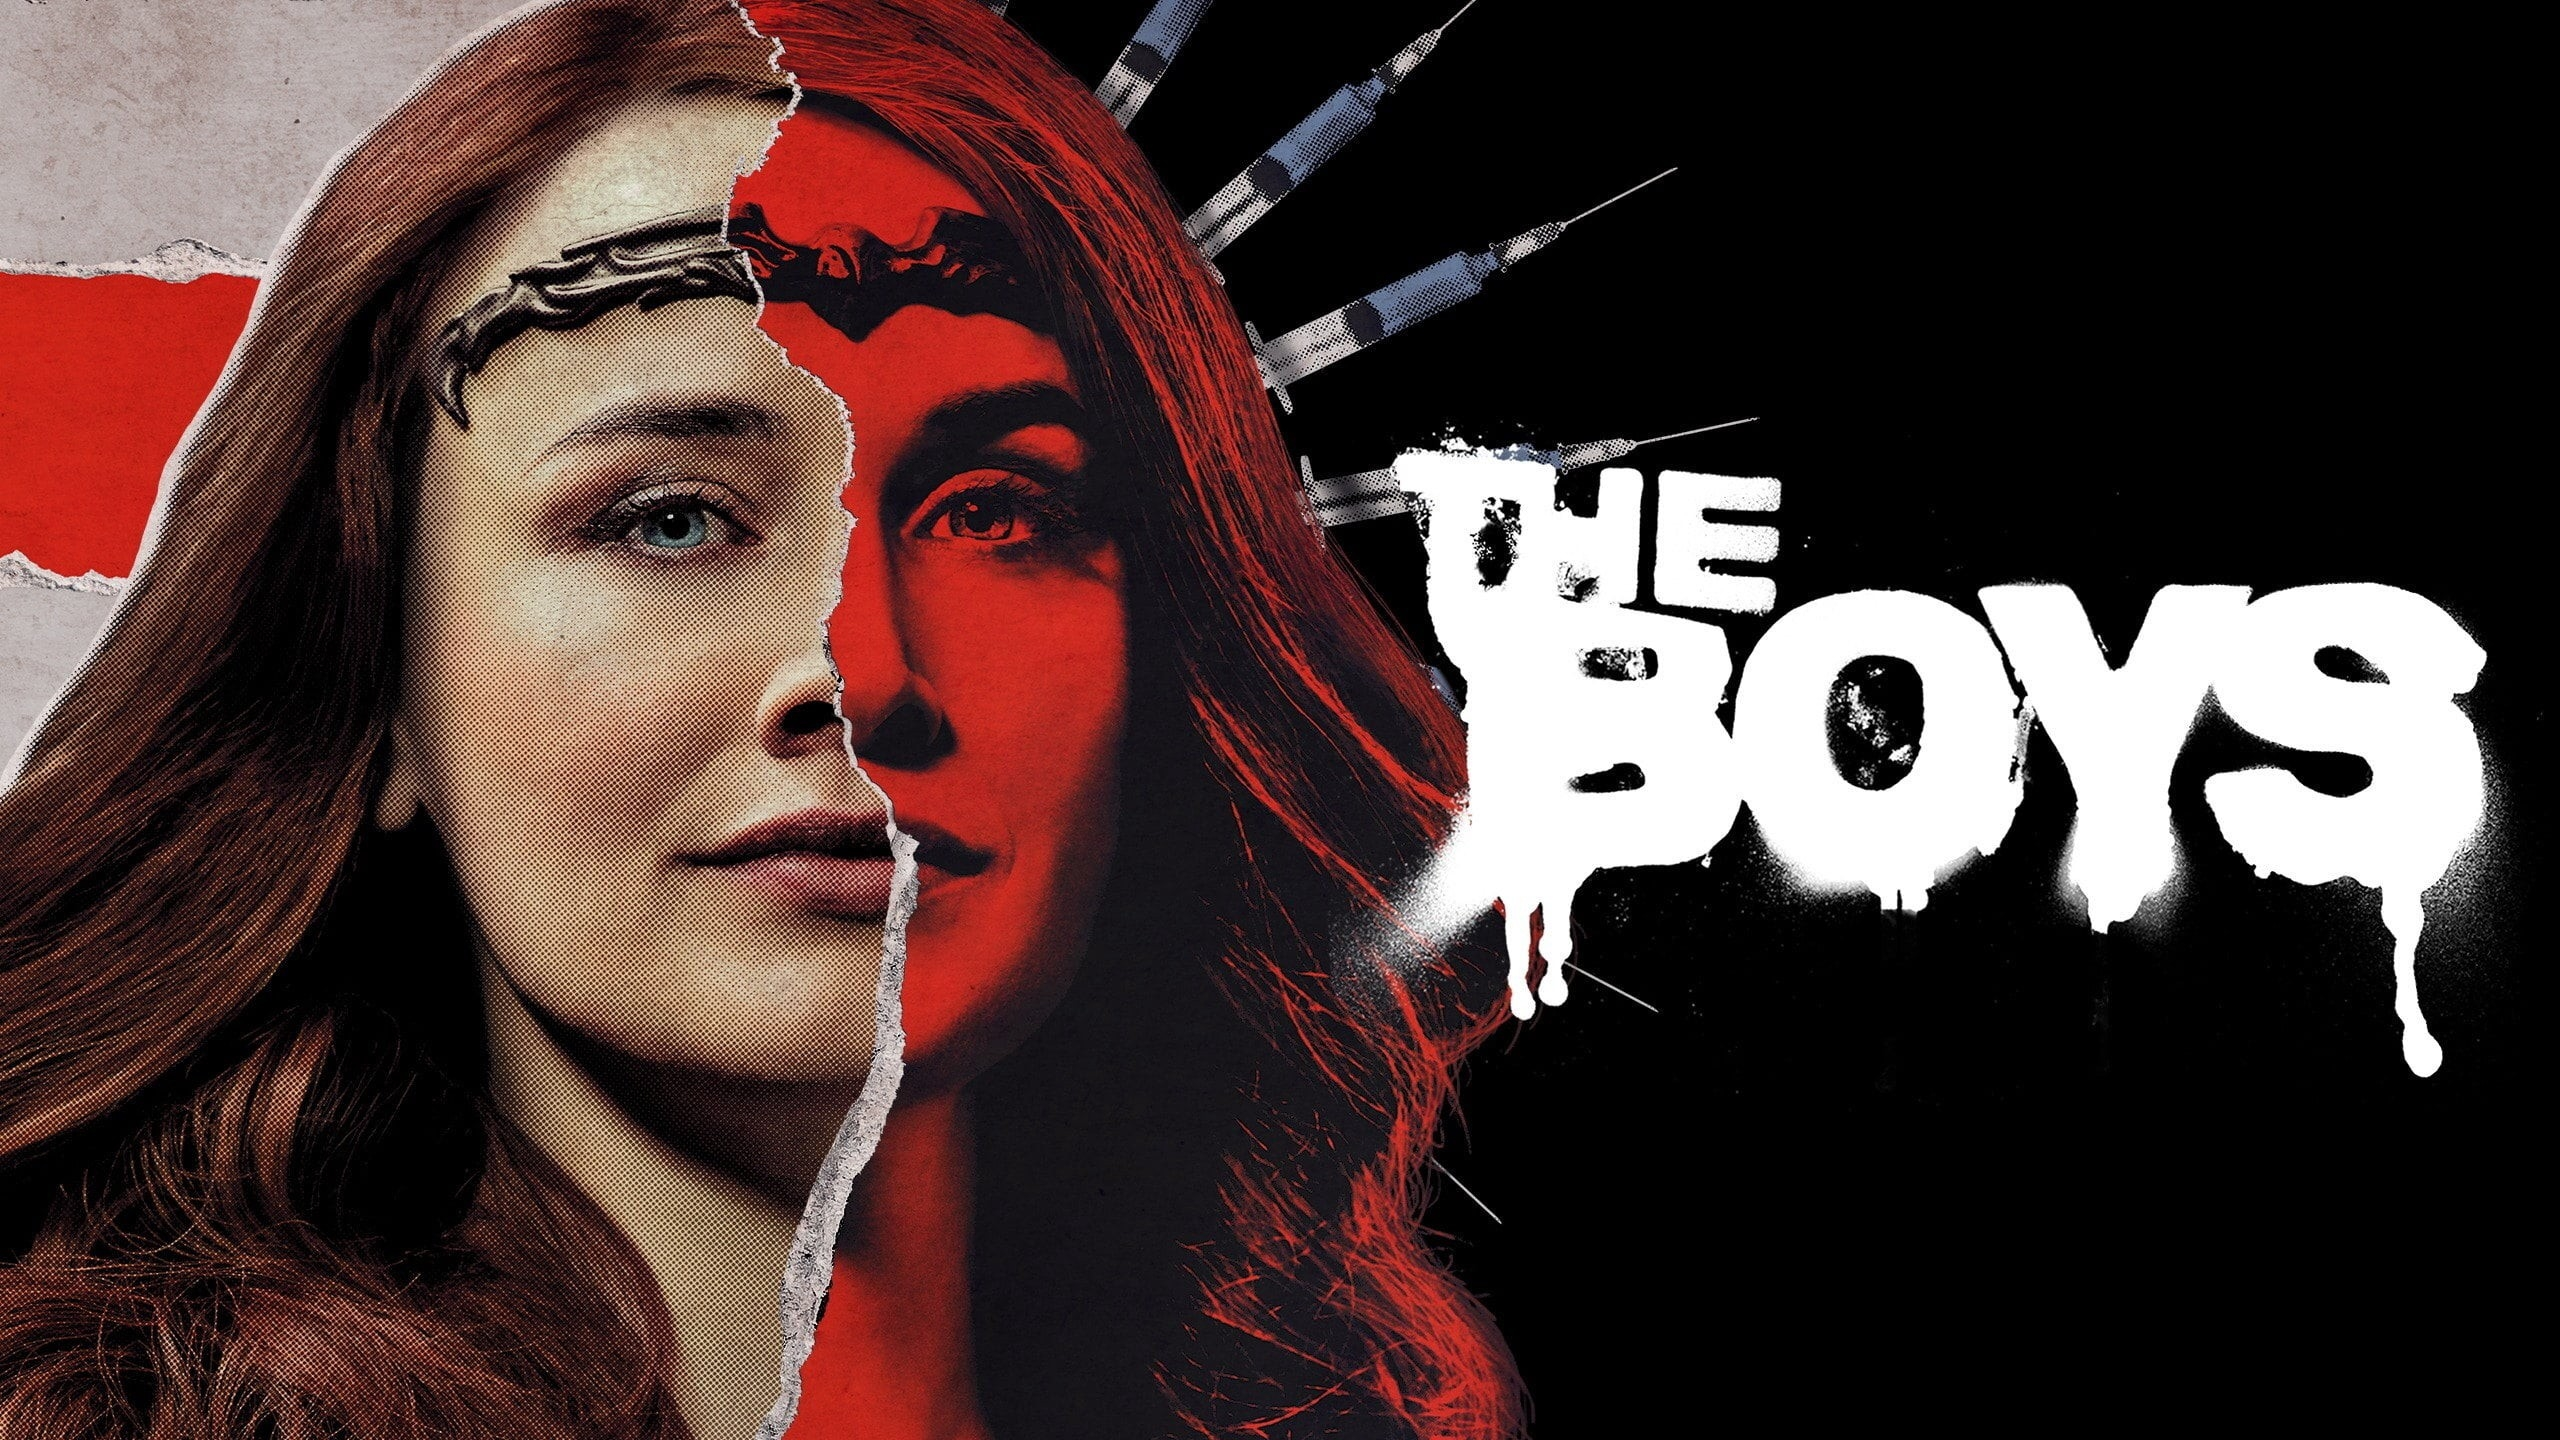 2560x1440 Queen Maeve The Boys 1440p Resolution Wallpaper Hd Tv Series 4k Wallpapers Images Photos And Background